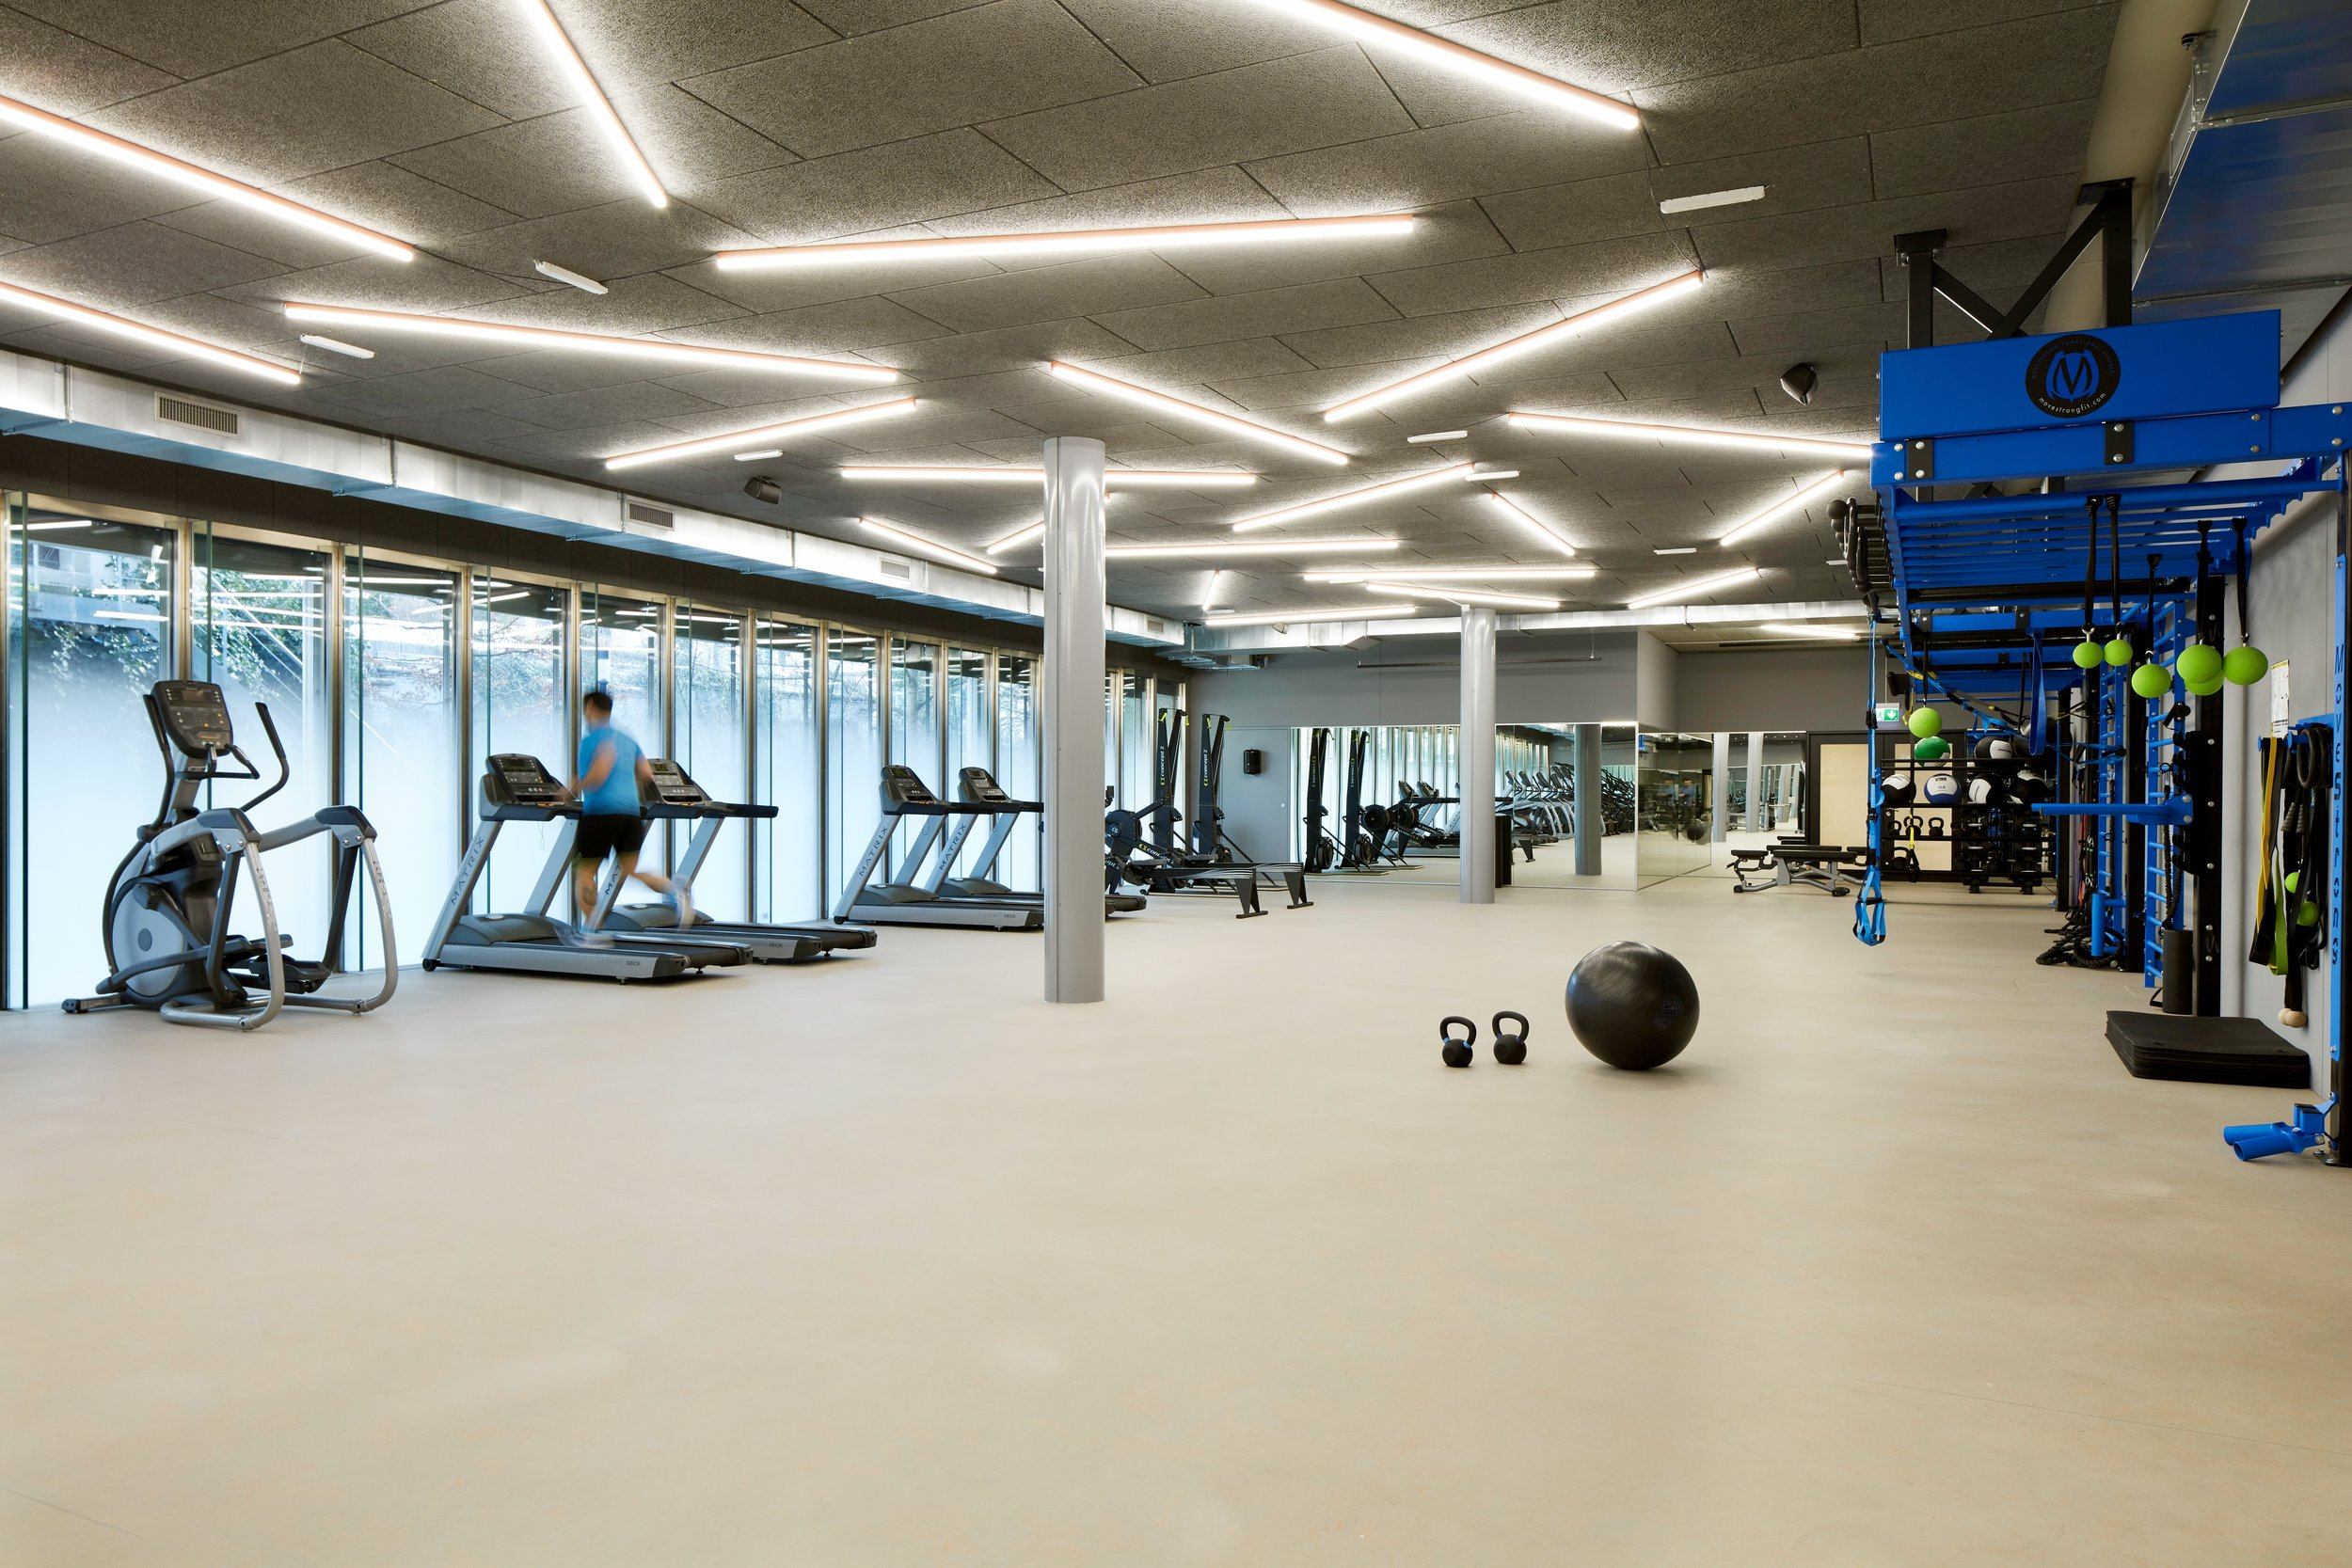 Open Floor Gym Design With MoveStrong Wall FTS